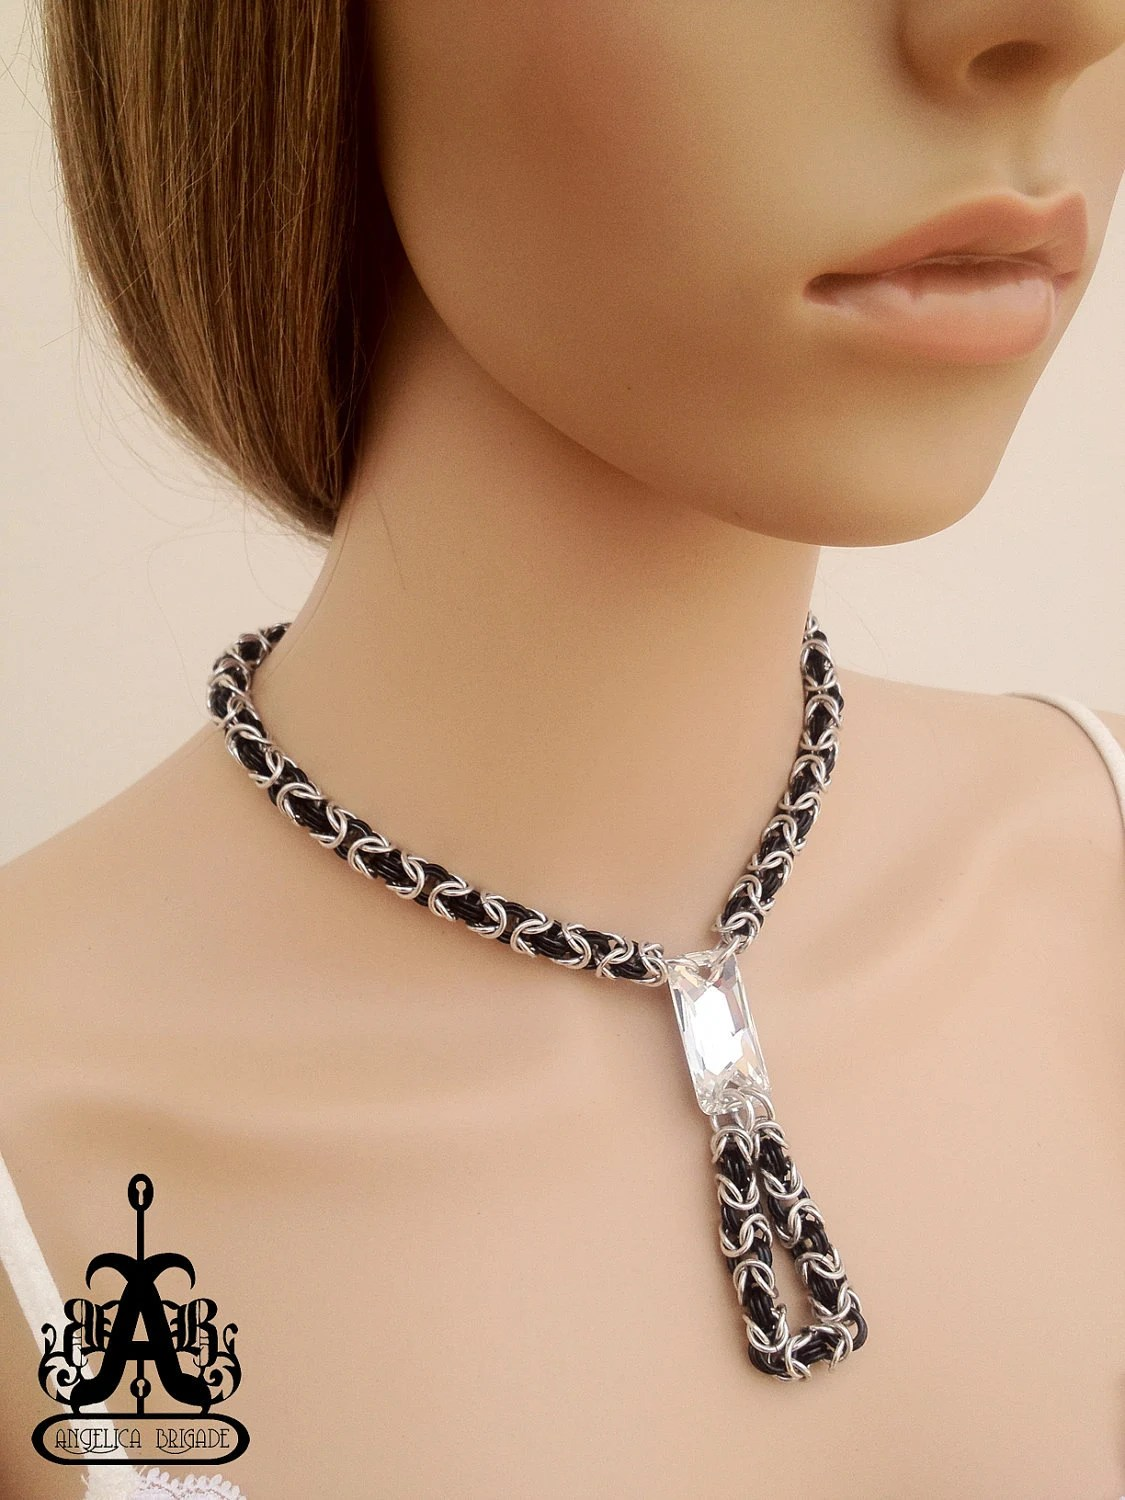 Contemporary Chain Maille Necklace with a Large Swarovski Crystal Centerpiece, US$60 Made to order. http://www.etsy.com/listing/89827486/contemporary-chain-maille-necklace-with An original design by joyz*k of Angelica Brigade